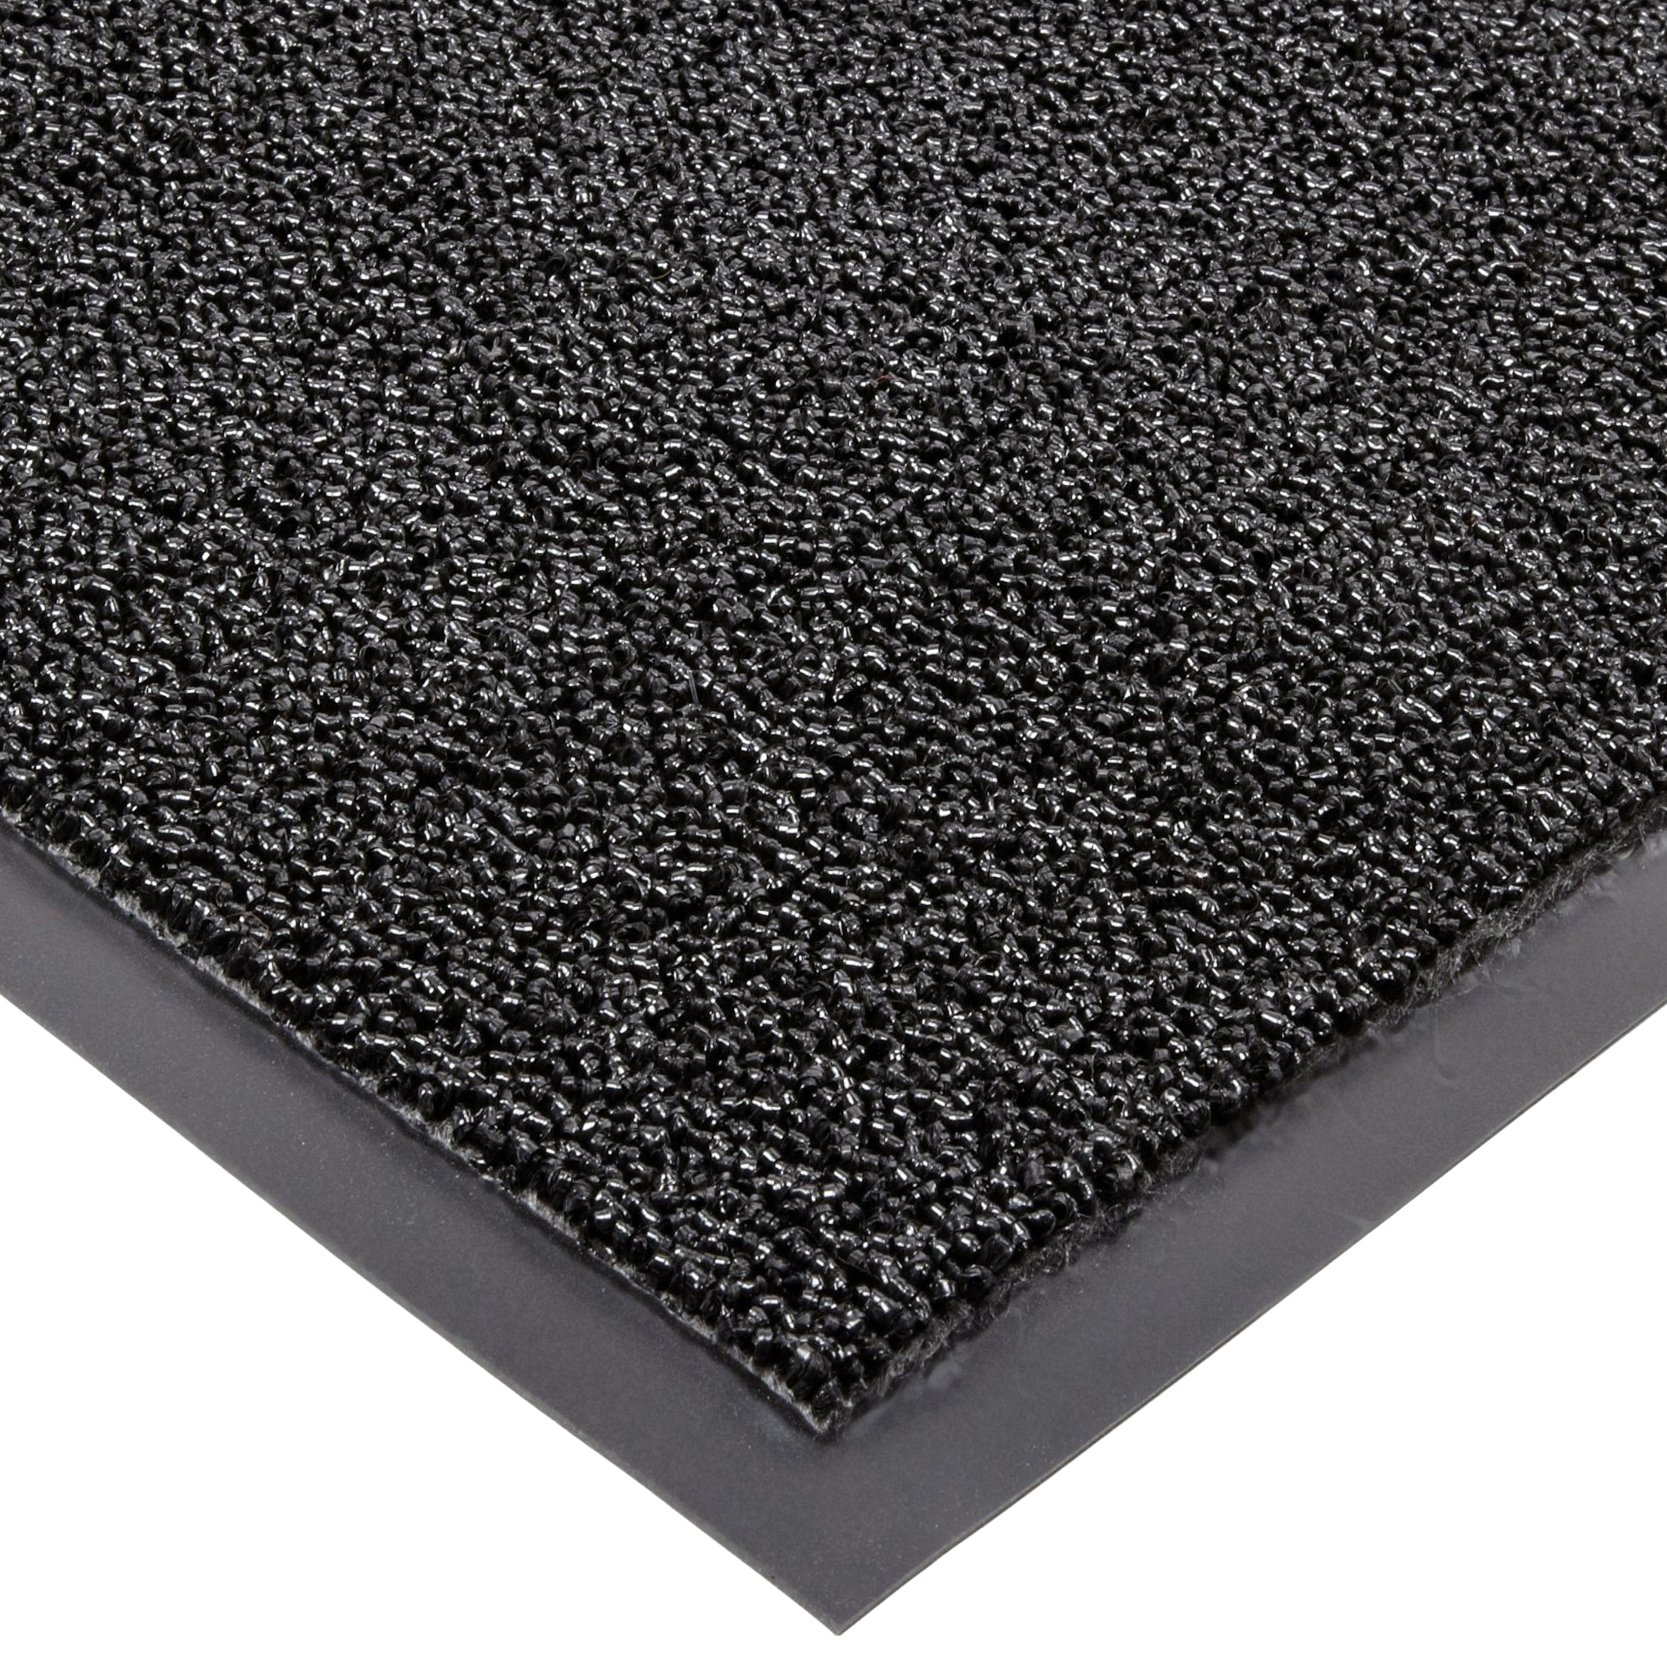 Notrax Non-Absorbent Fiber 231 Prelude Entrance Mat, for Outdoor and Heavy Traffic Areas, 2' Width x 3' Length x 1/4'' Thickness, Black